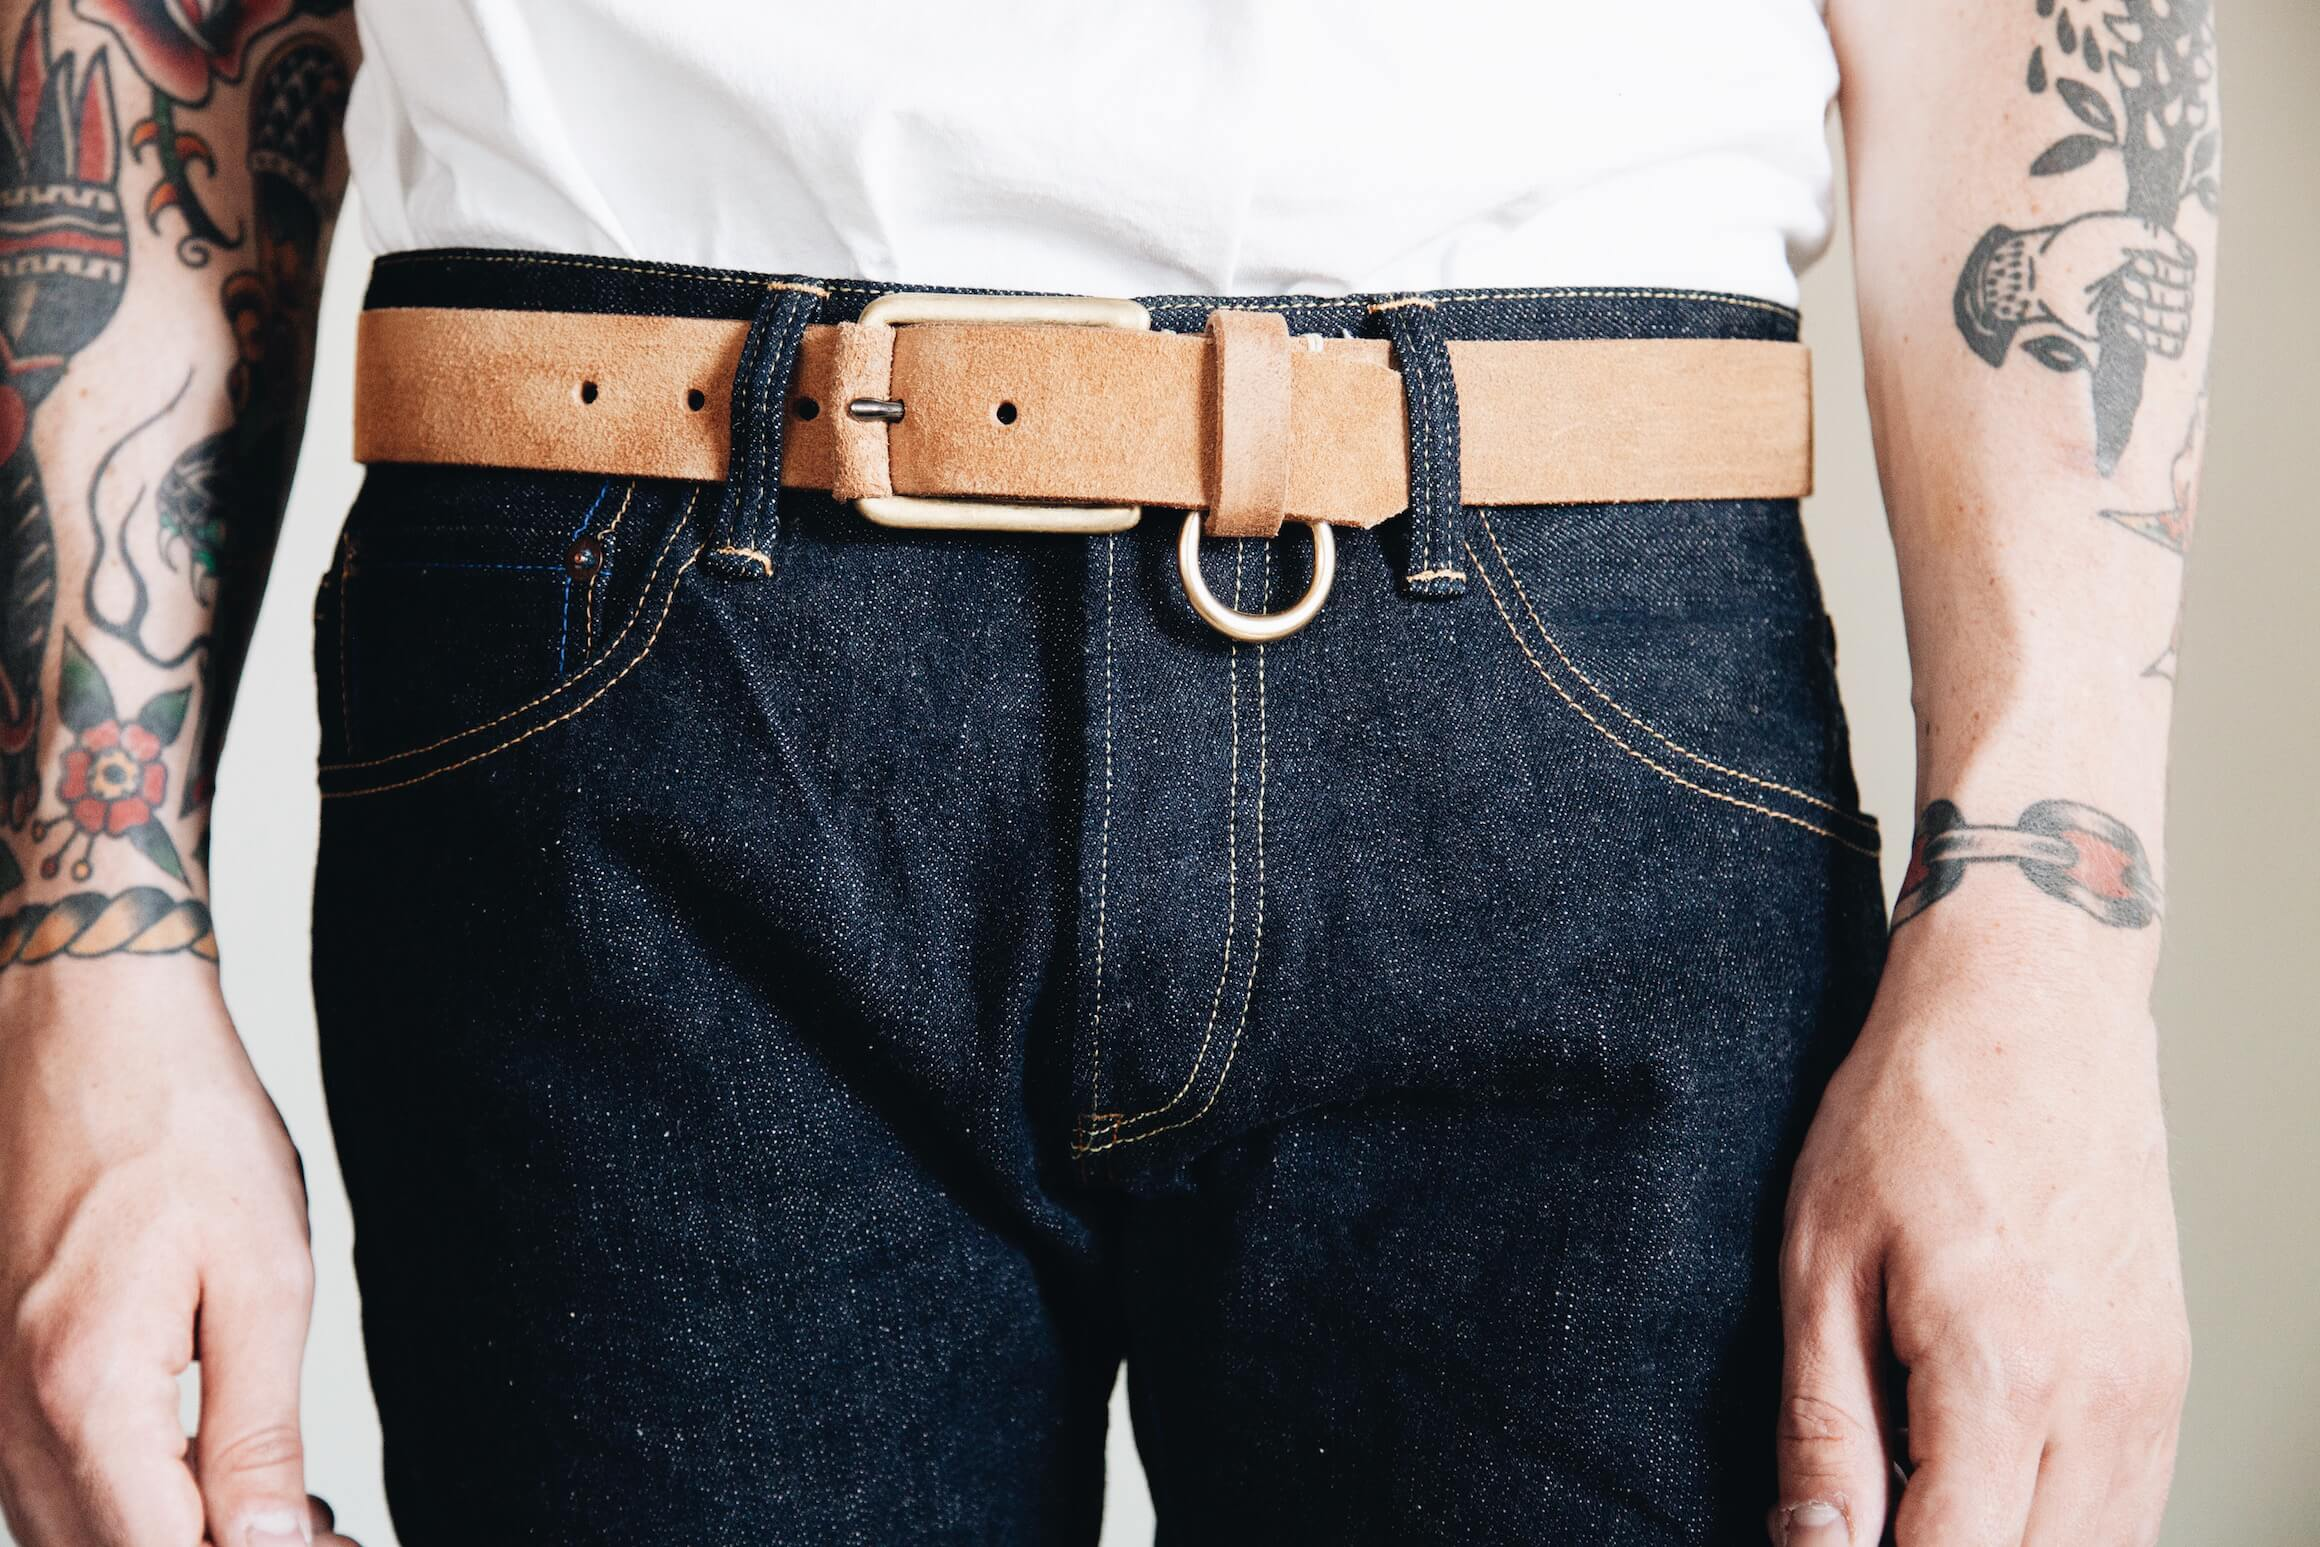 Tanuki NT 16.5oz Natural jeans and yuketen belt on body